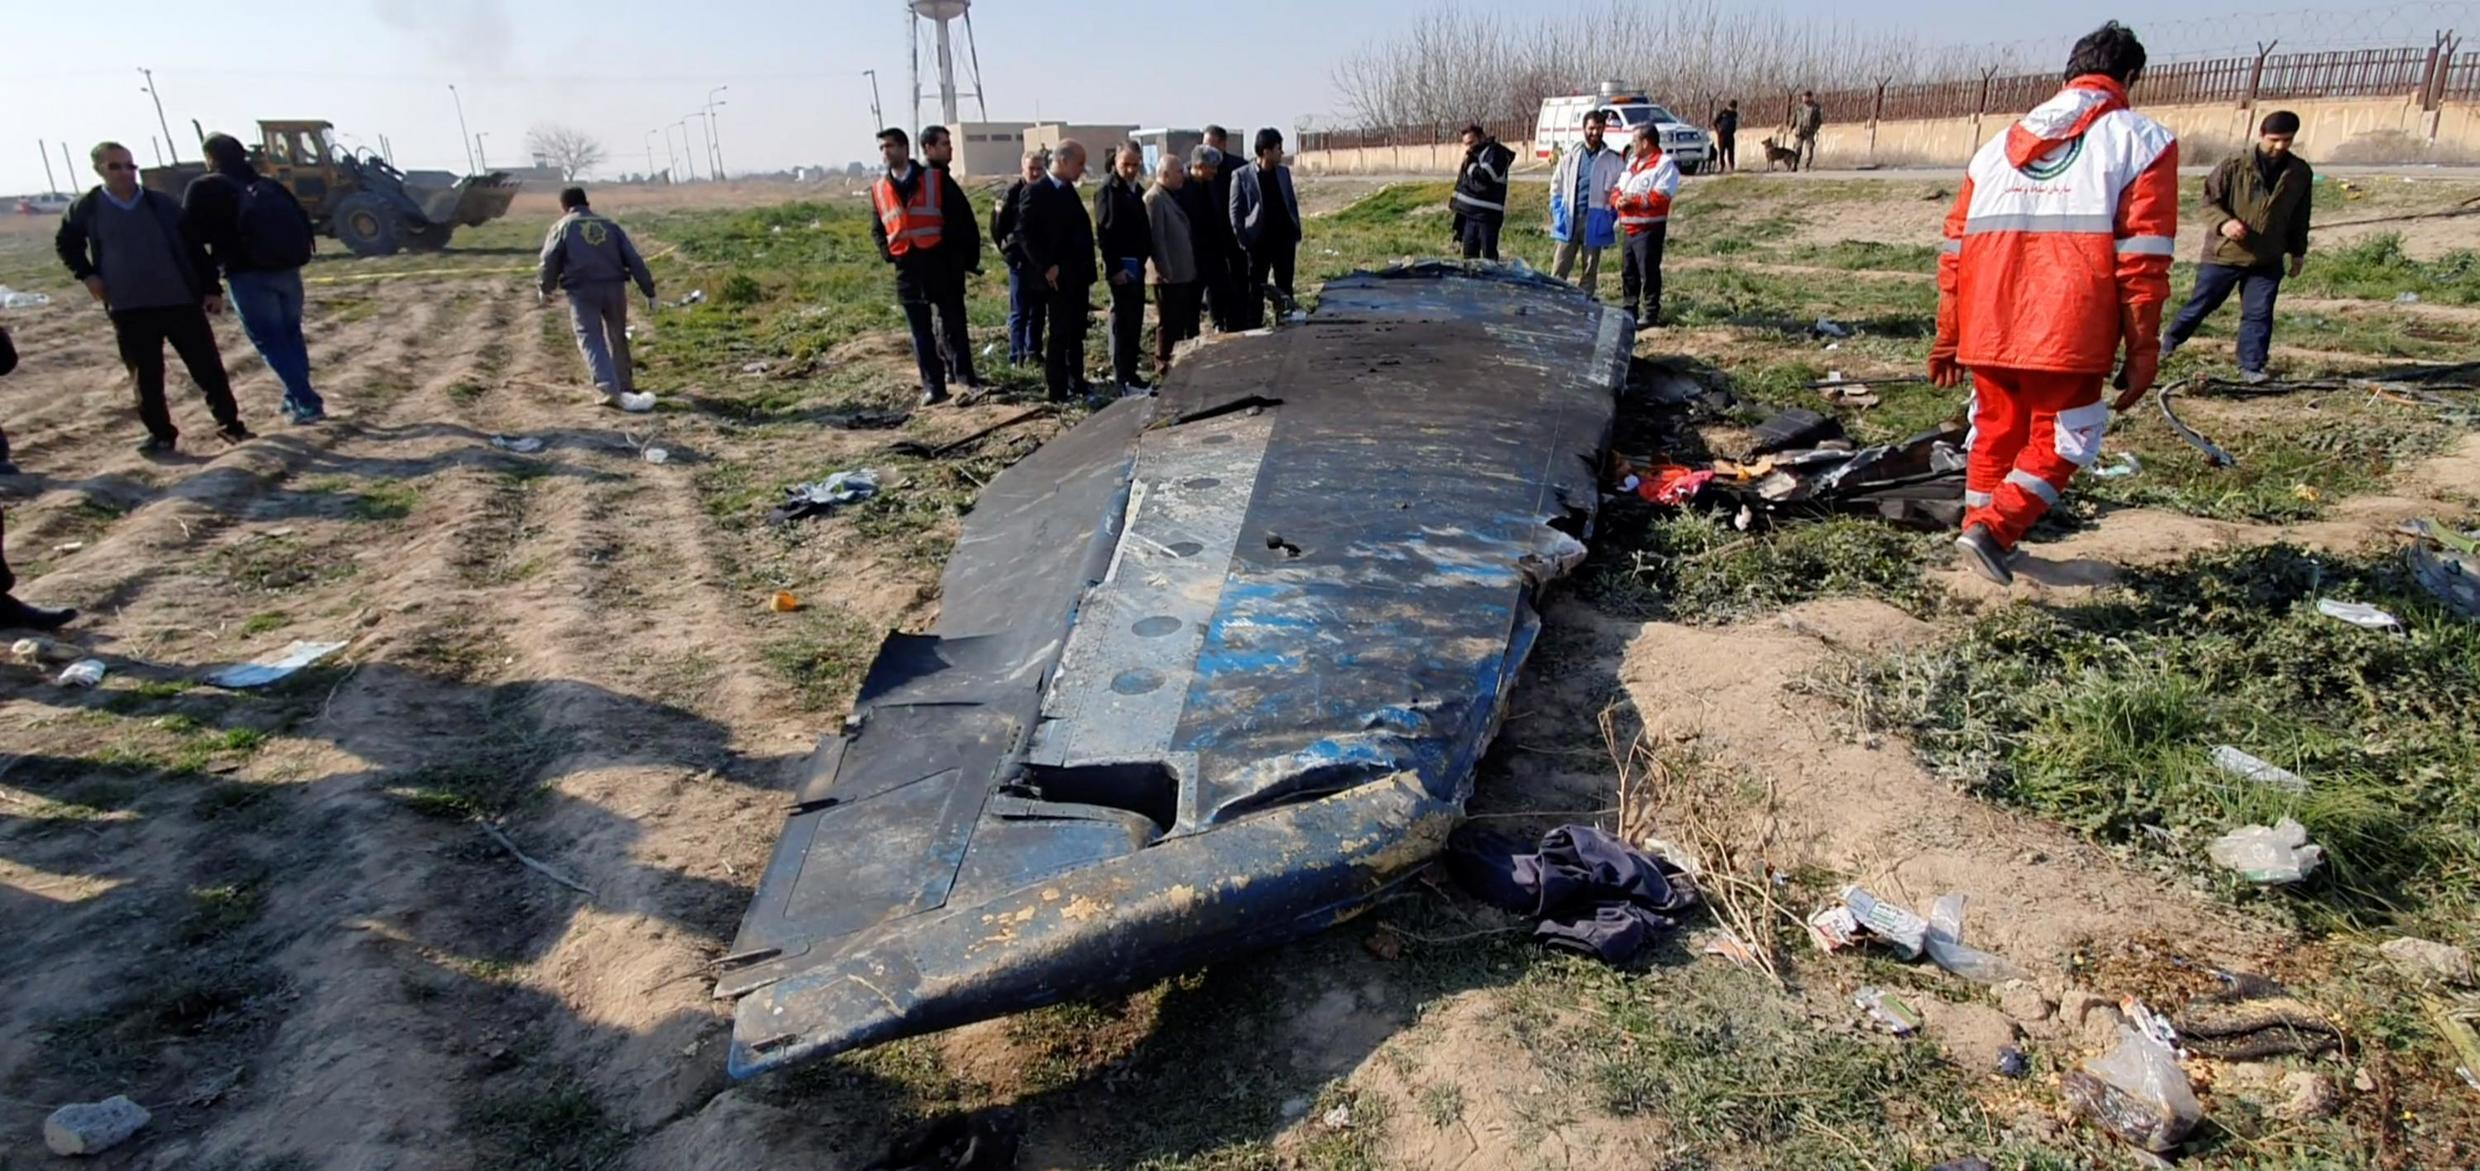 General view of the debris of the Ukraine International Airlines, flight PS752, Boeing 737-800 plane that crashed after take-off from Iran's Imam Khomeini airport, on the outskirts of Tehran, Iran January 8, 2020 is seen in this screen grab